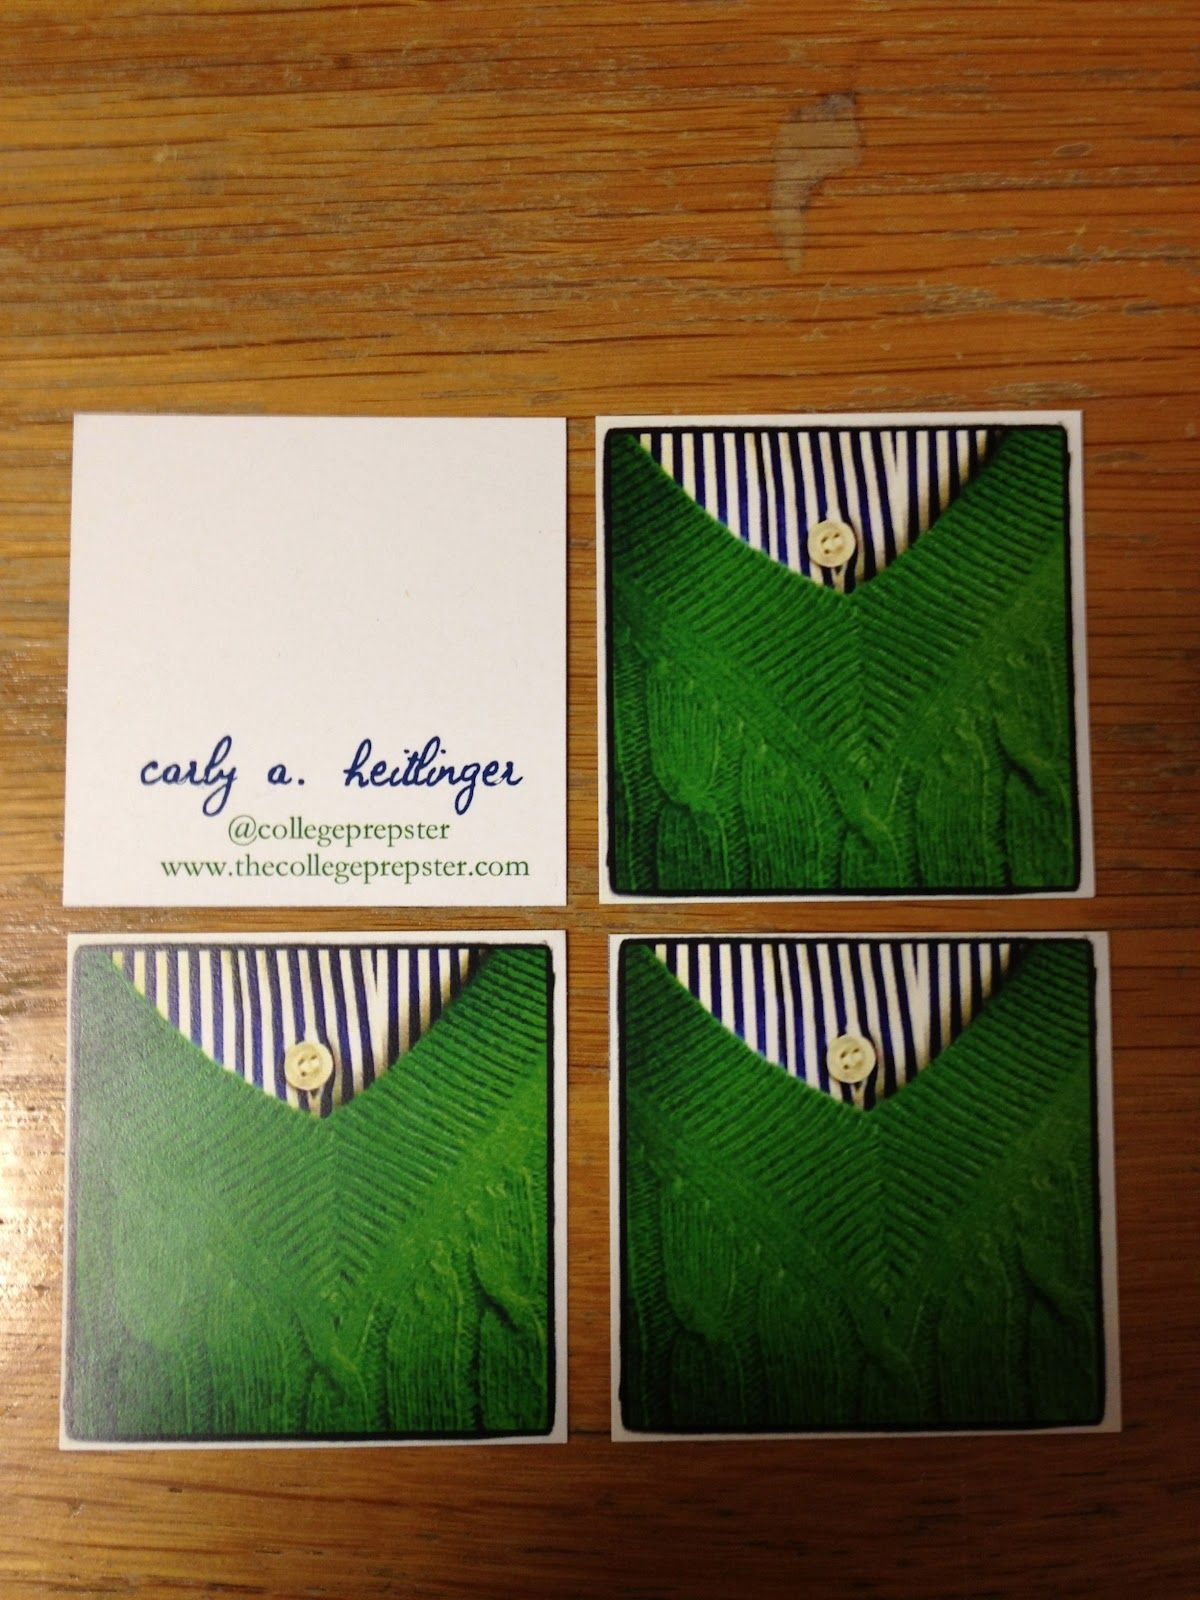 College Prep Instagram Business Cards Diy Gifts Projects